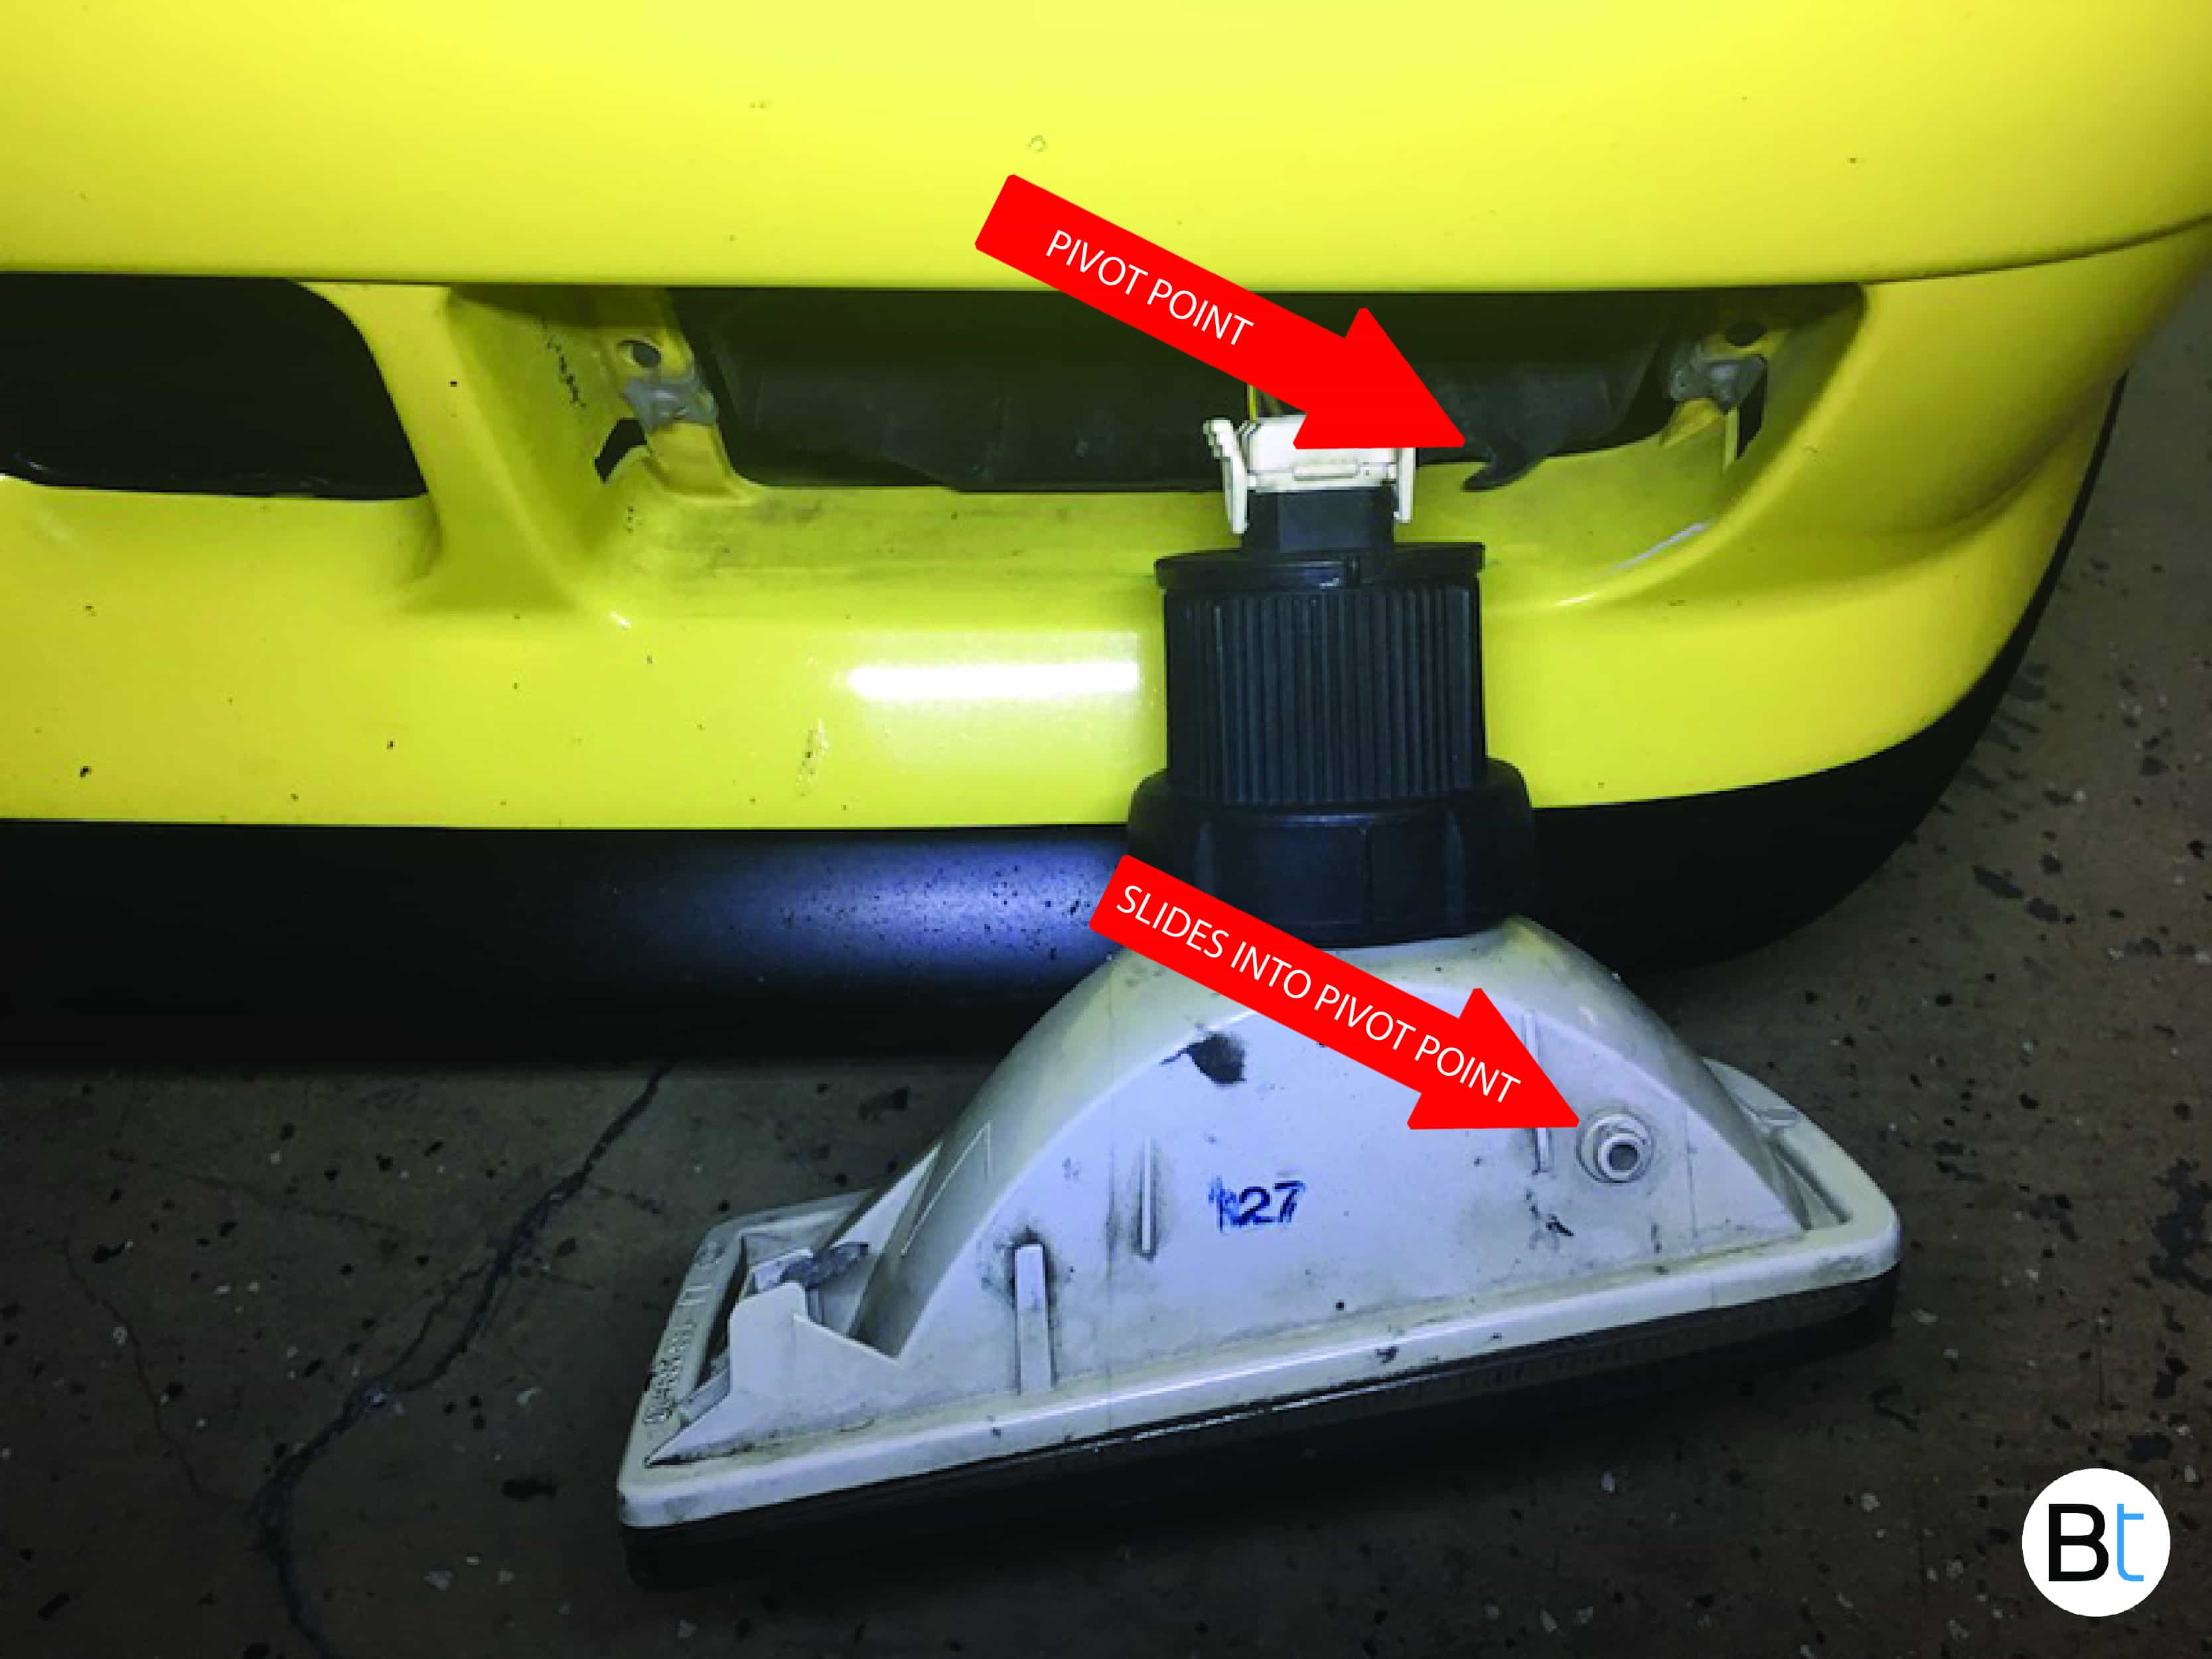 BMW Fog lamp removal